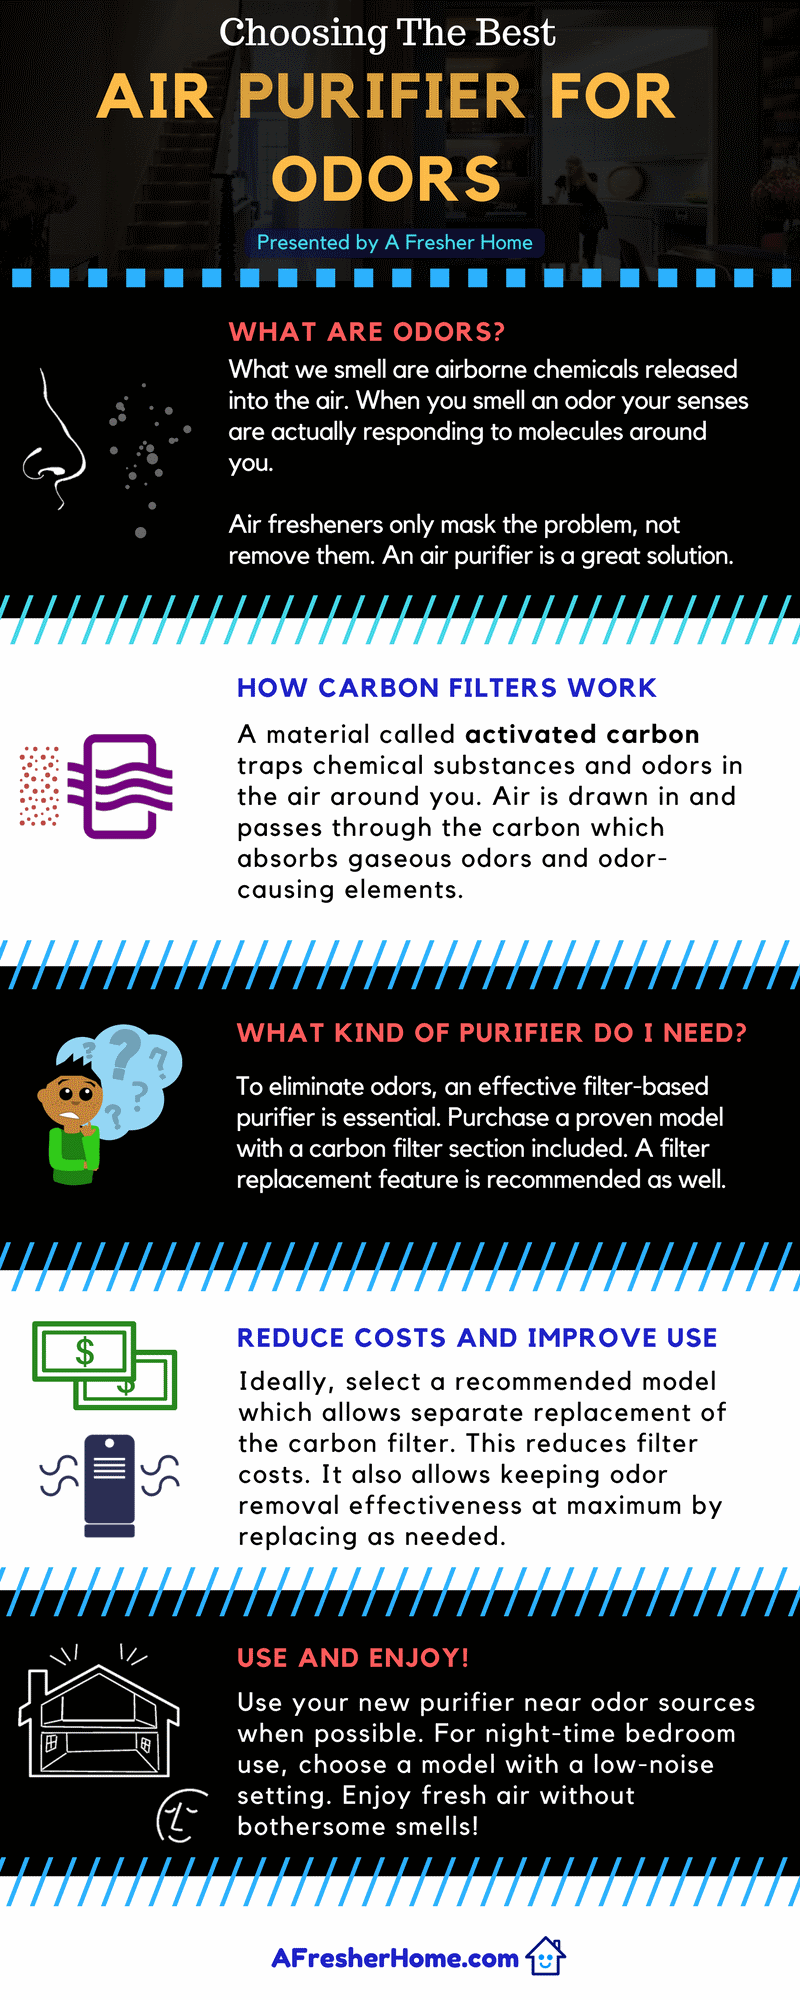 Infographic guide for the best air purifier for odor elimination